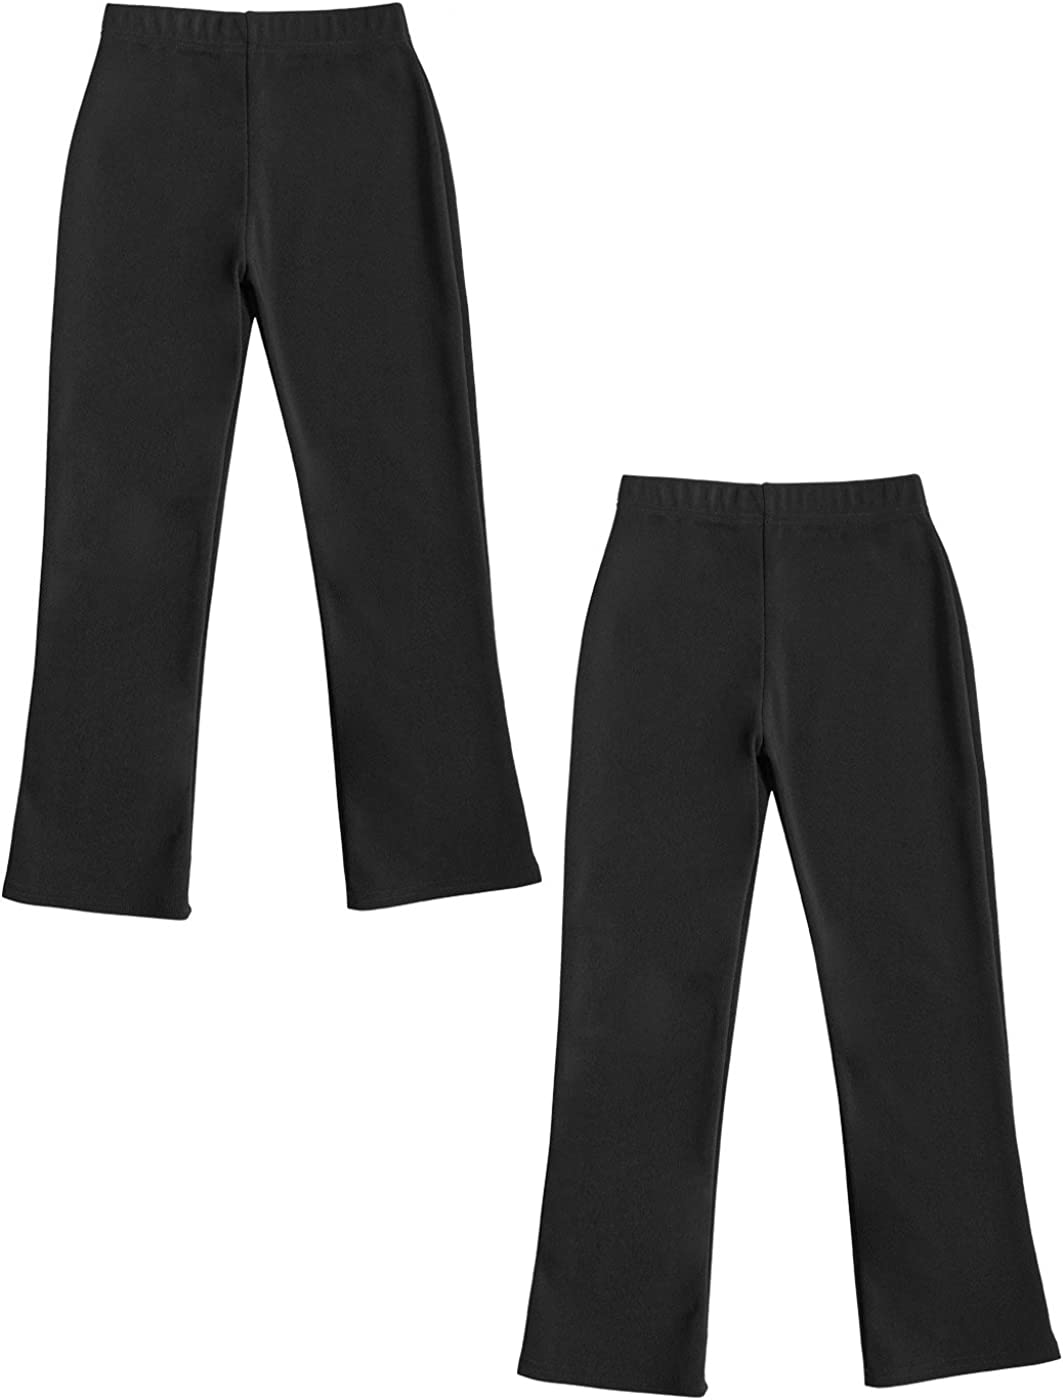 Pull On Stretch Rib Trousers Junction 10 Girls Elasticated Waist Pull Up School Trousers